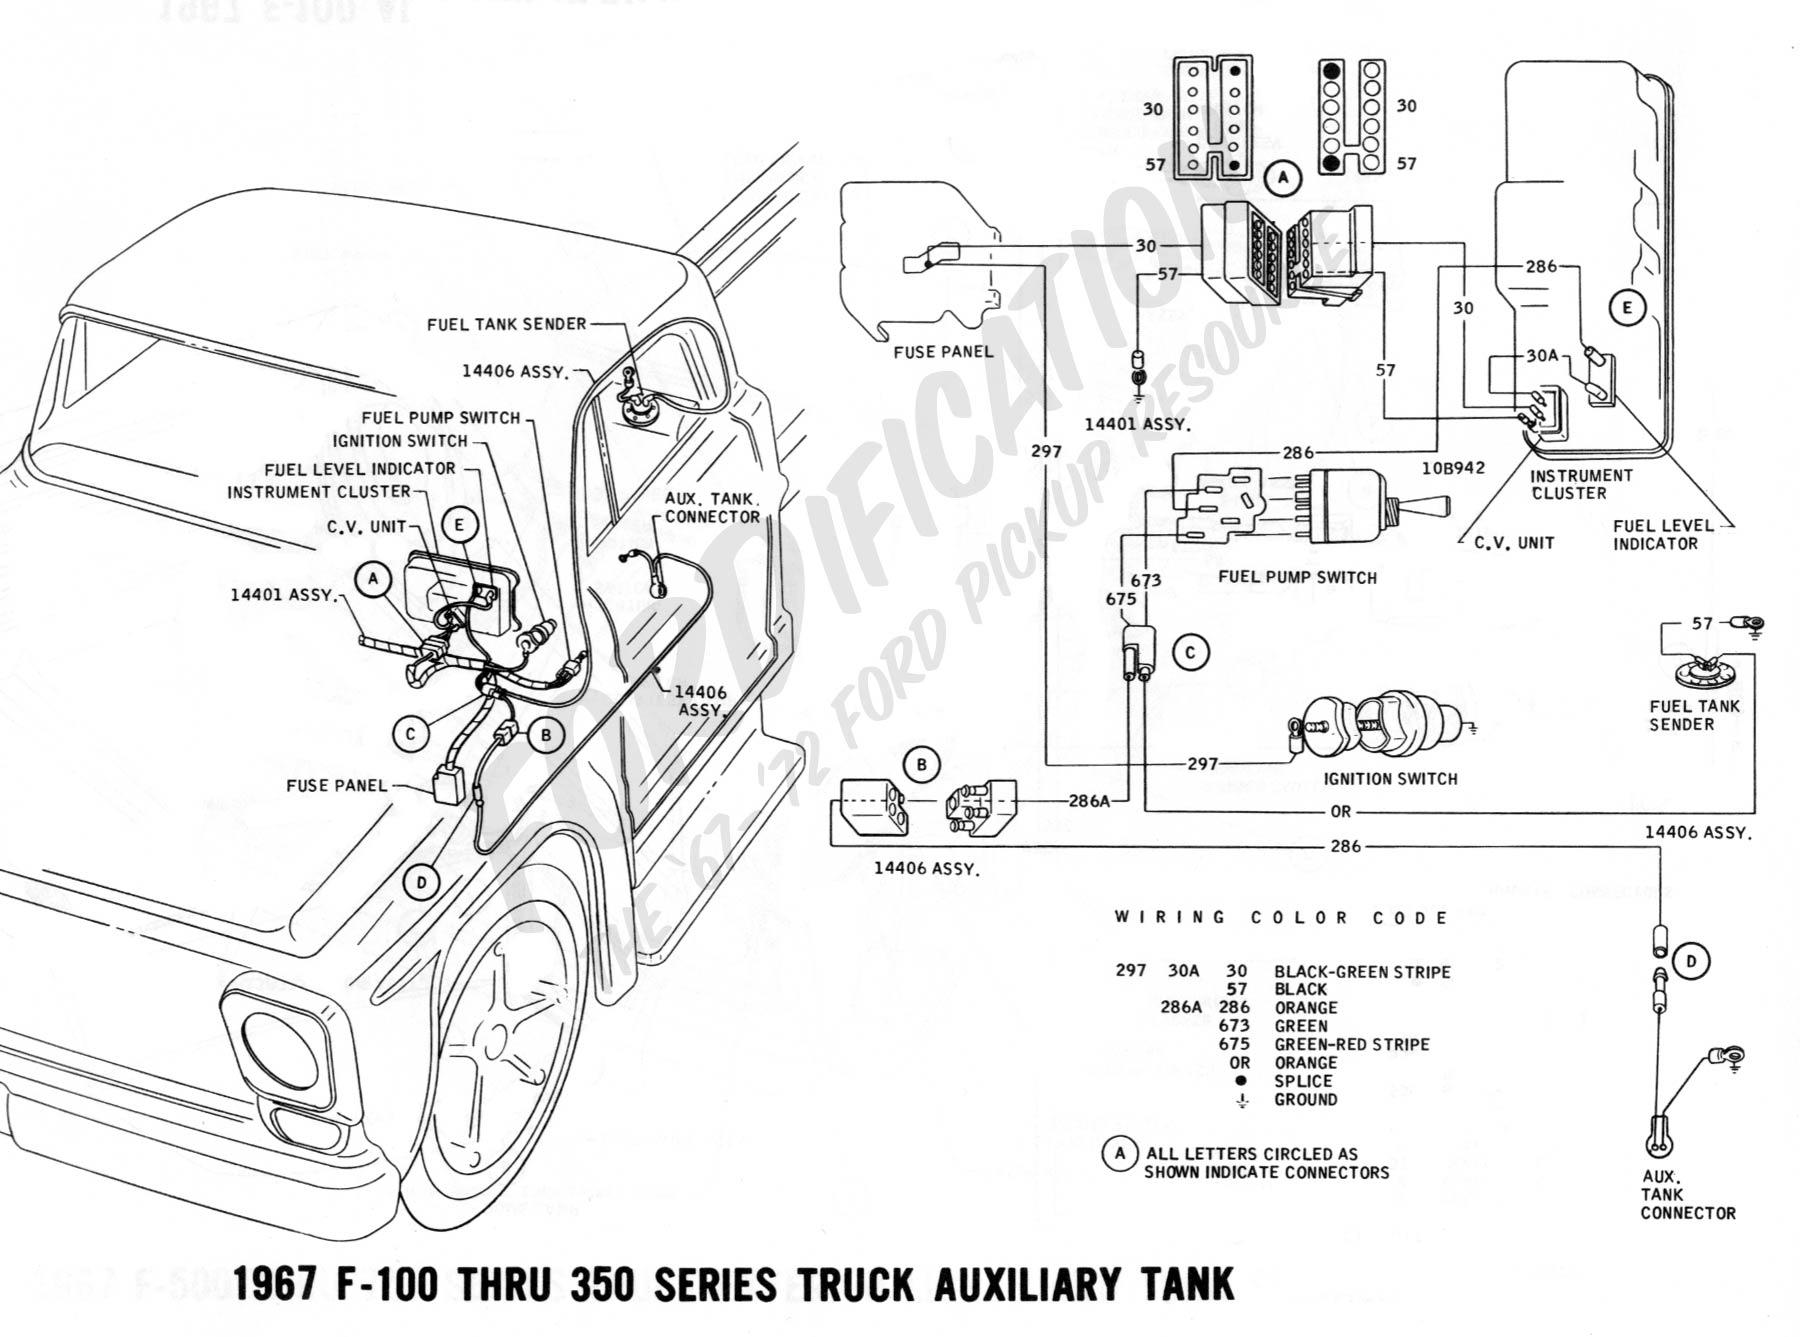 wiring 1967auxtank ford truck technical drawings and schematics section h wiring 1977 ford f150 wiring diagram at eliteediting.co